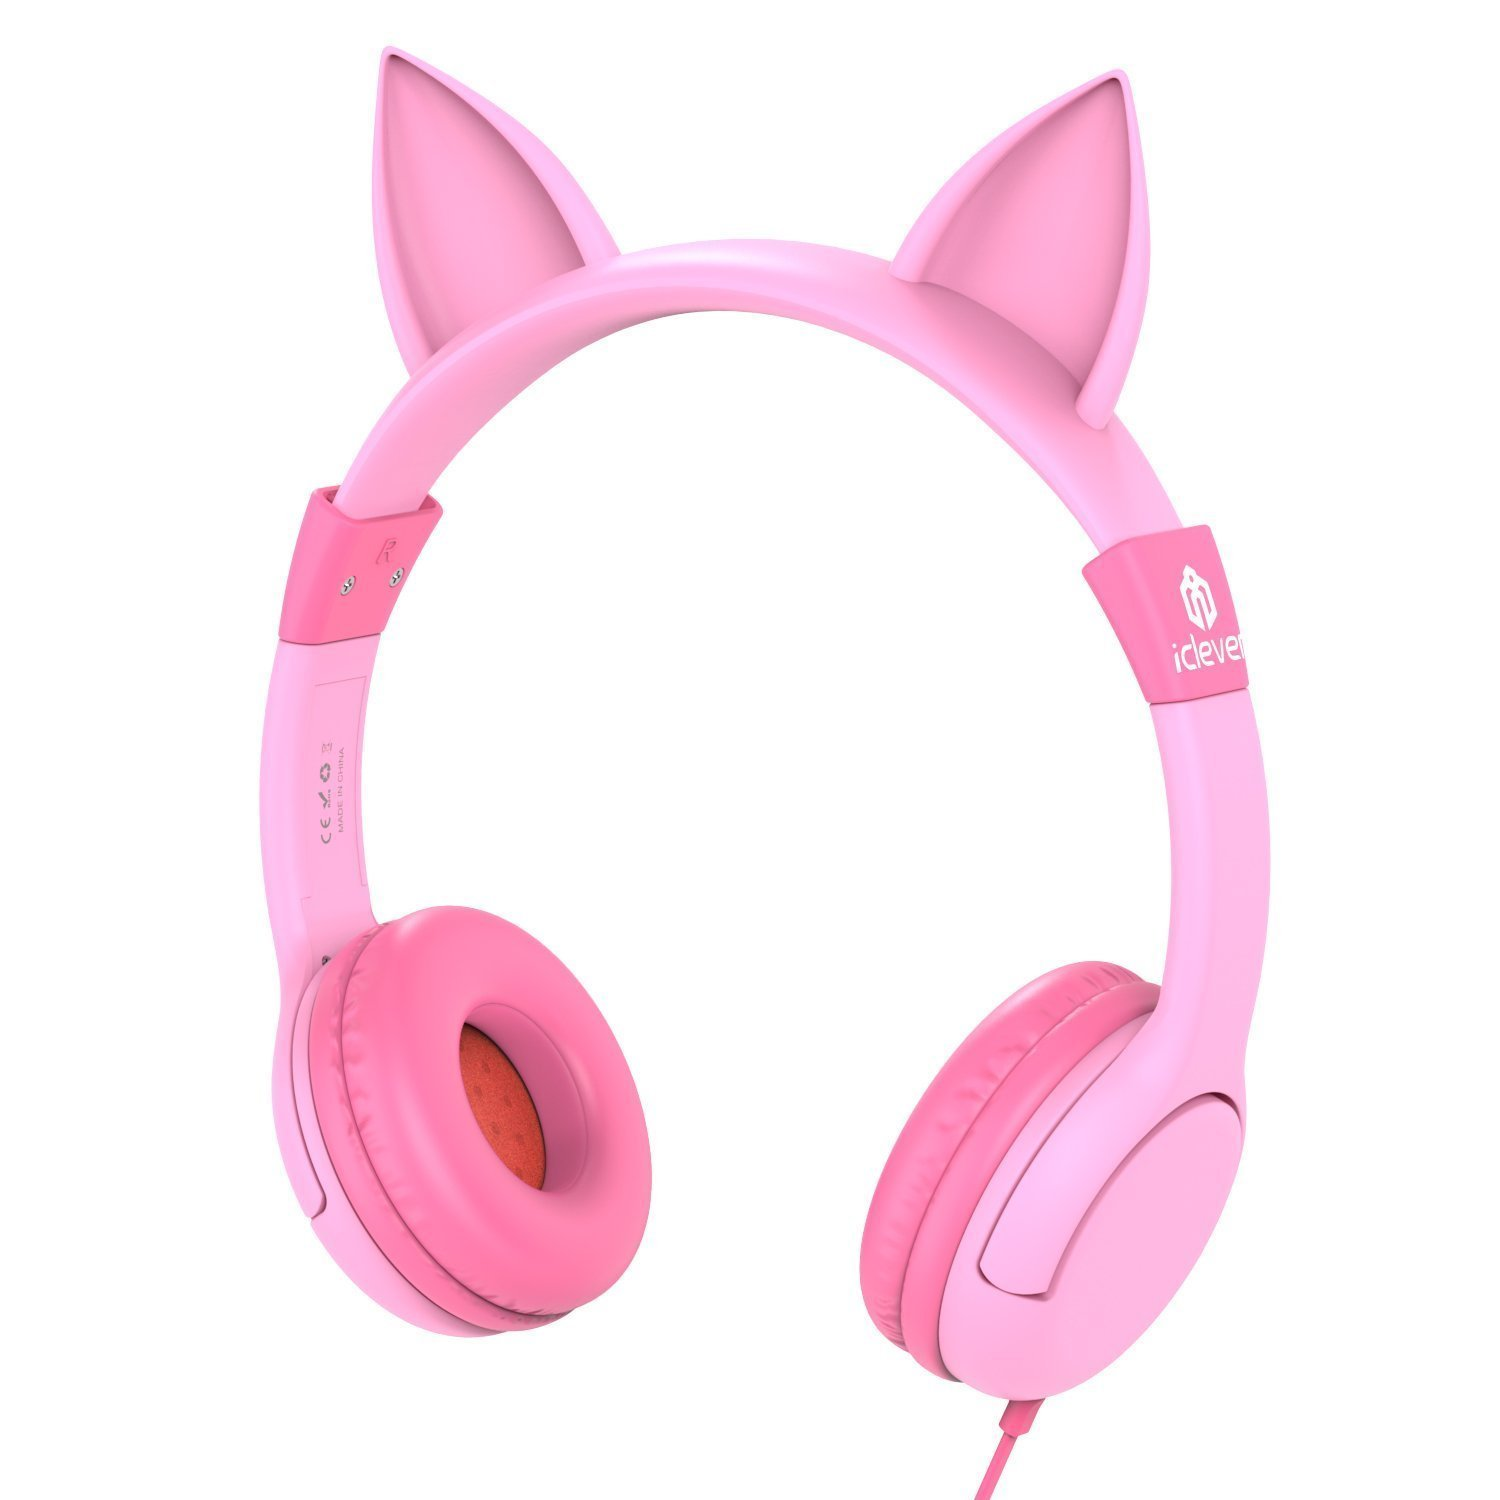 Kids Headphones Over Ear, iClever Volume Limiting Headphones for Kids, Children Headphones Cat-Inspired, Baby Headphones for Surface iPod iPhone iPad ...